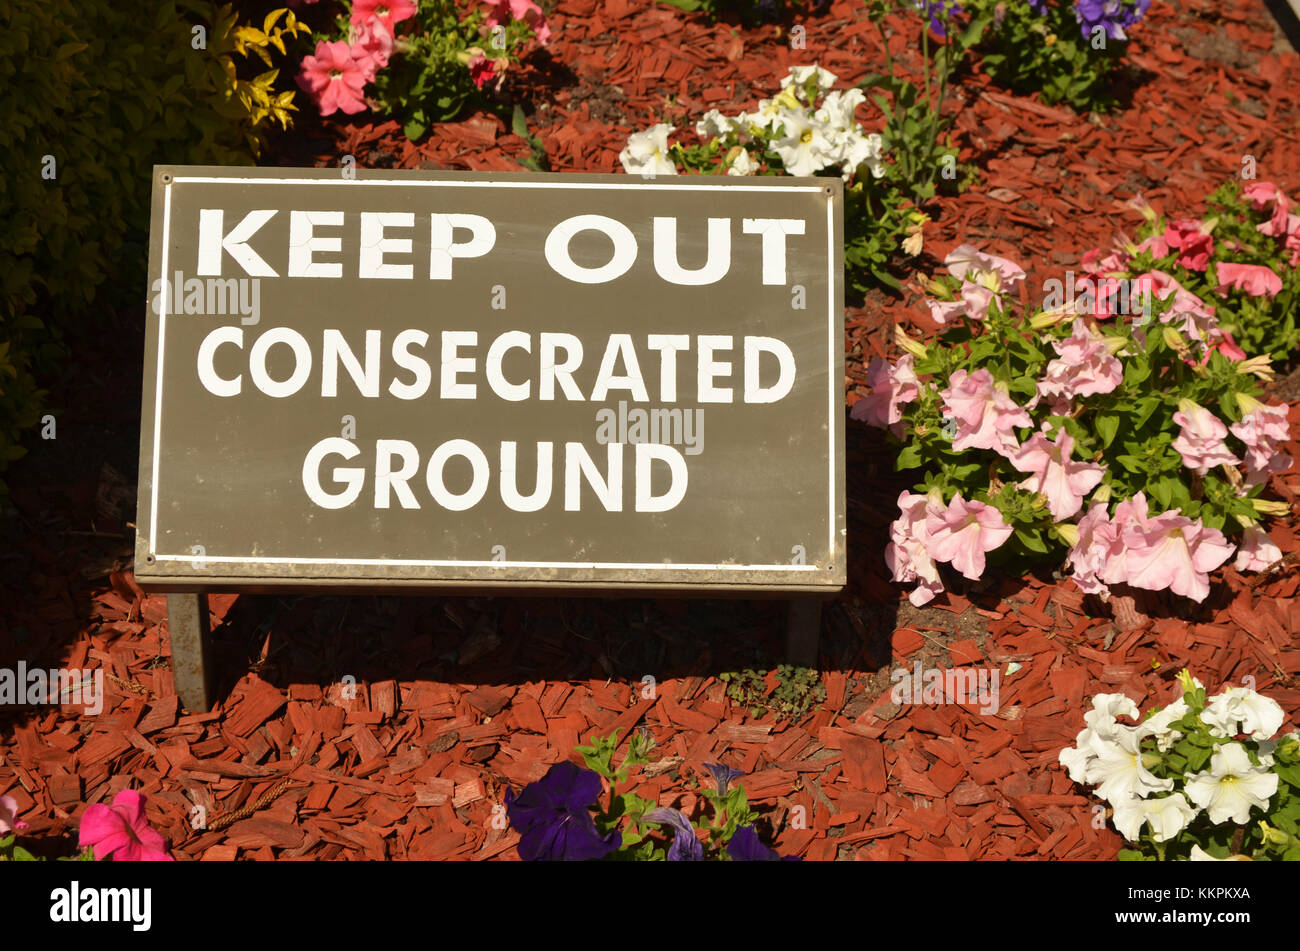 Keep out consecrated ground sign - Stock Image